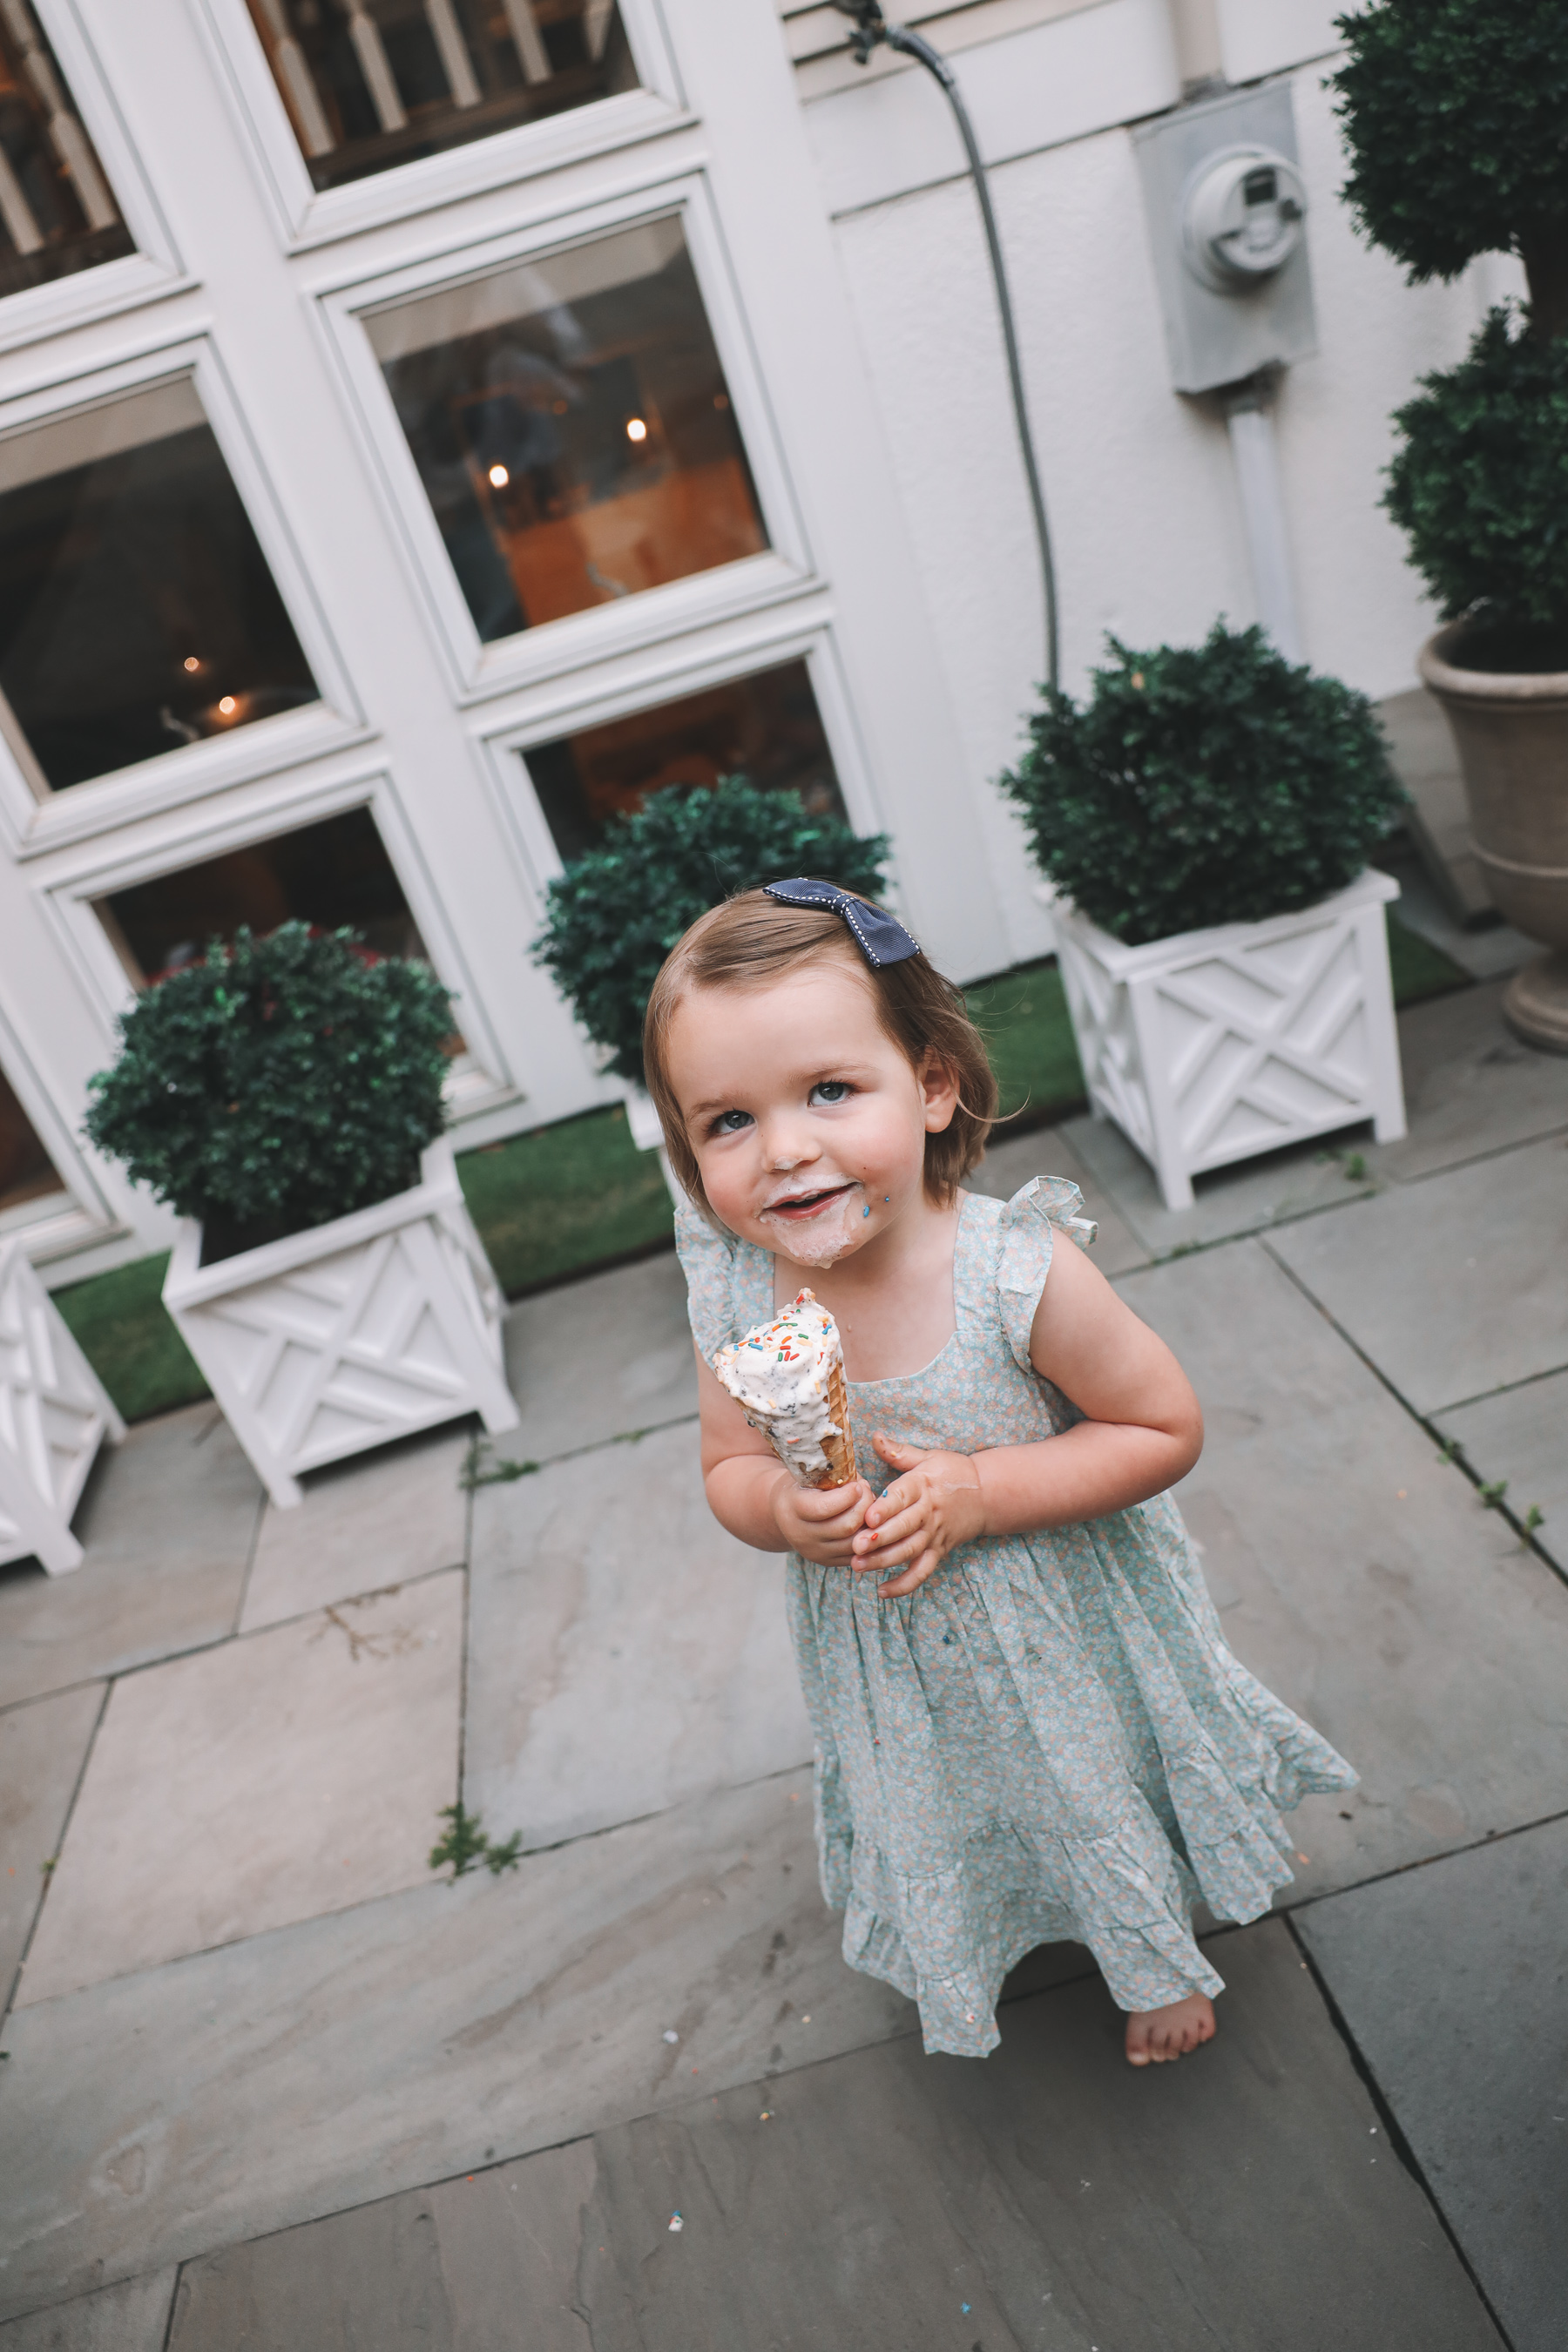 Toddler Favorite Day Ice Cream flavors